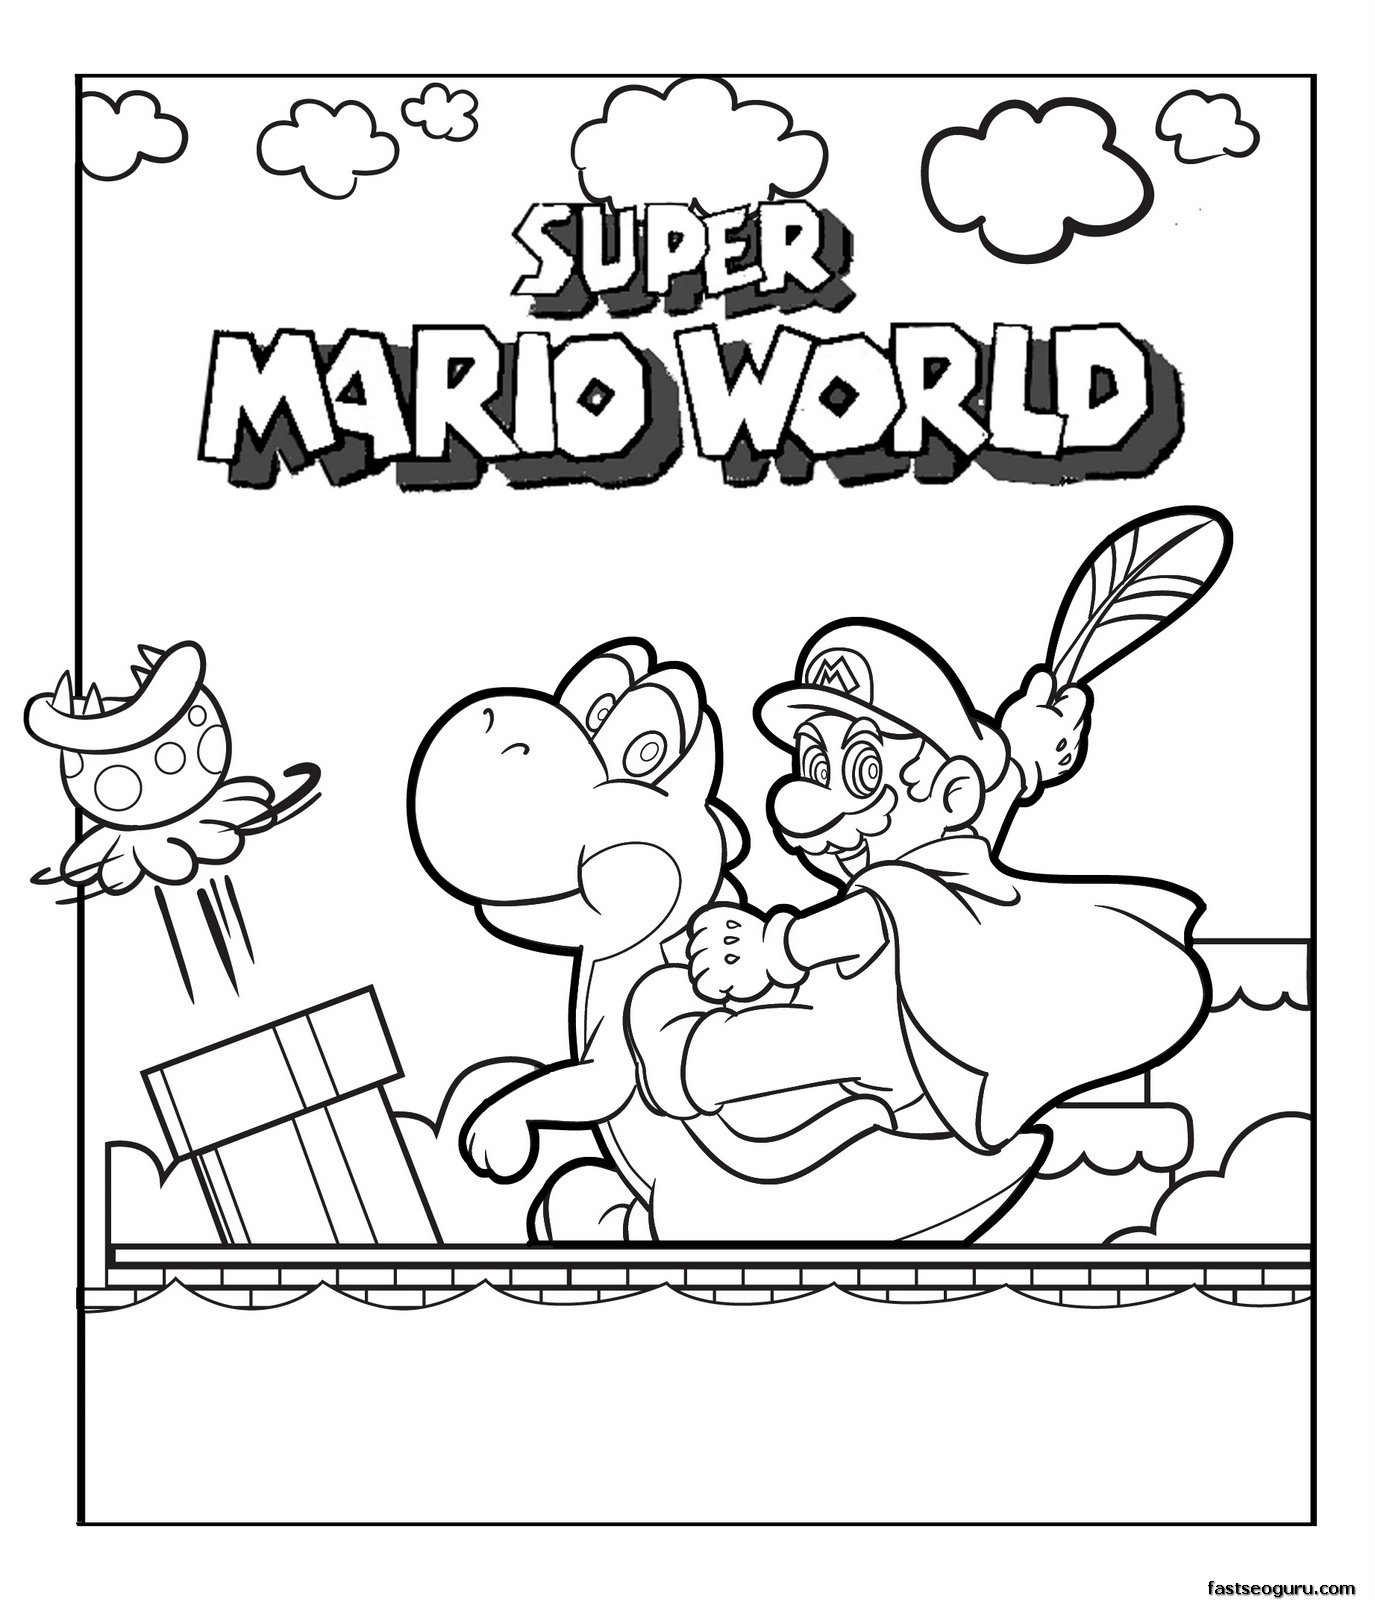 kids print out coloring pages - photo#22